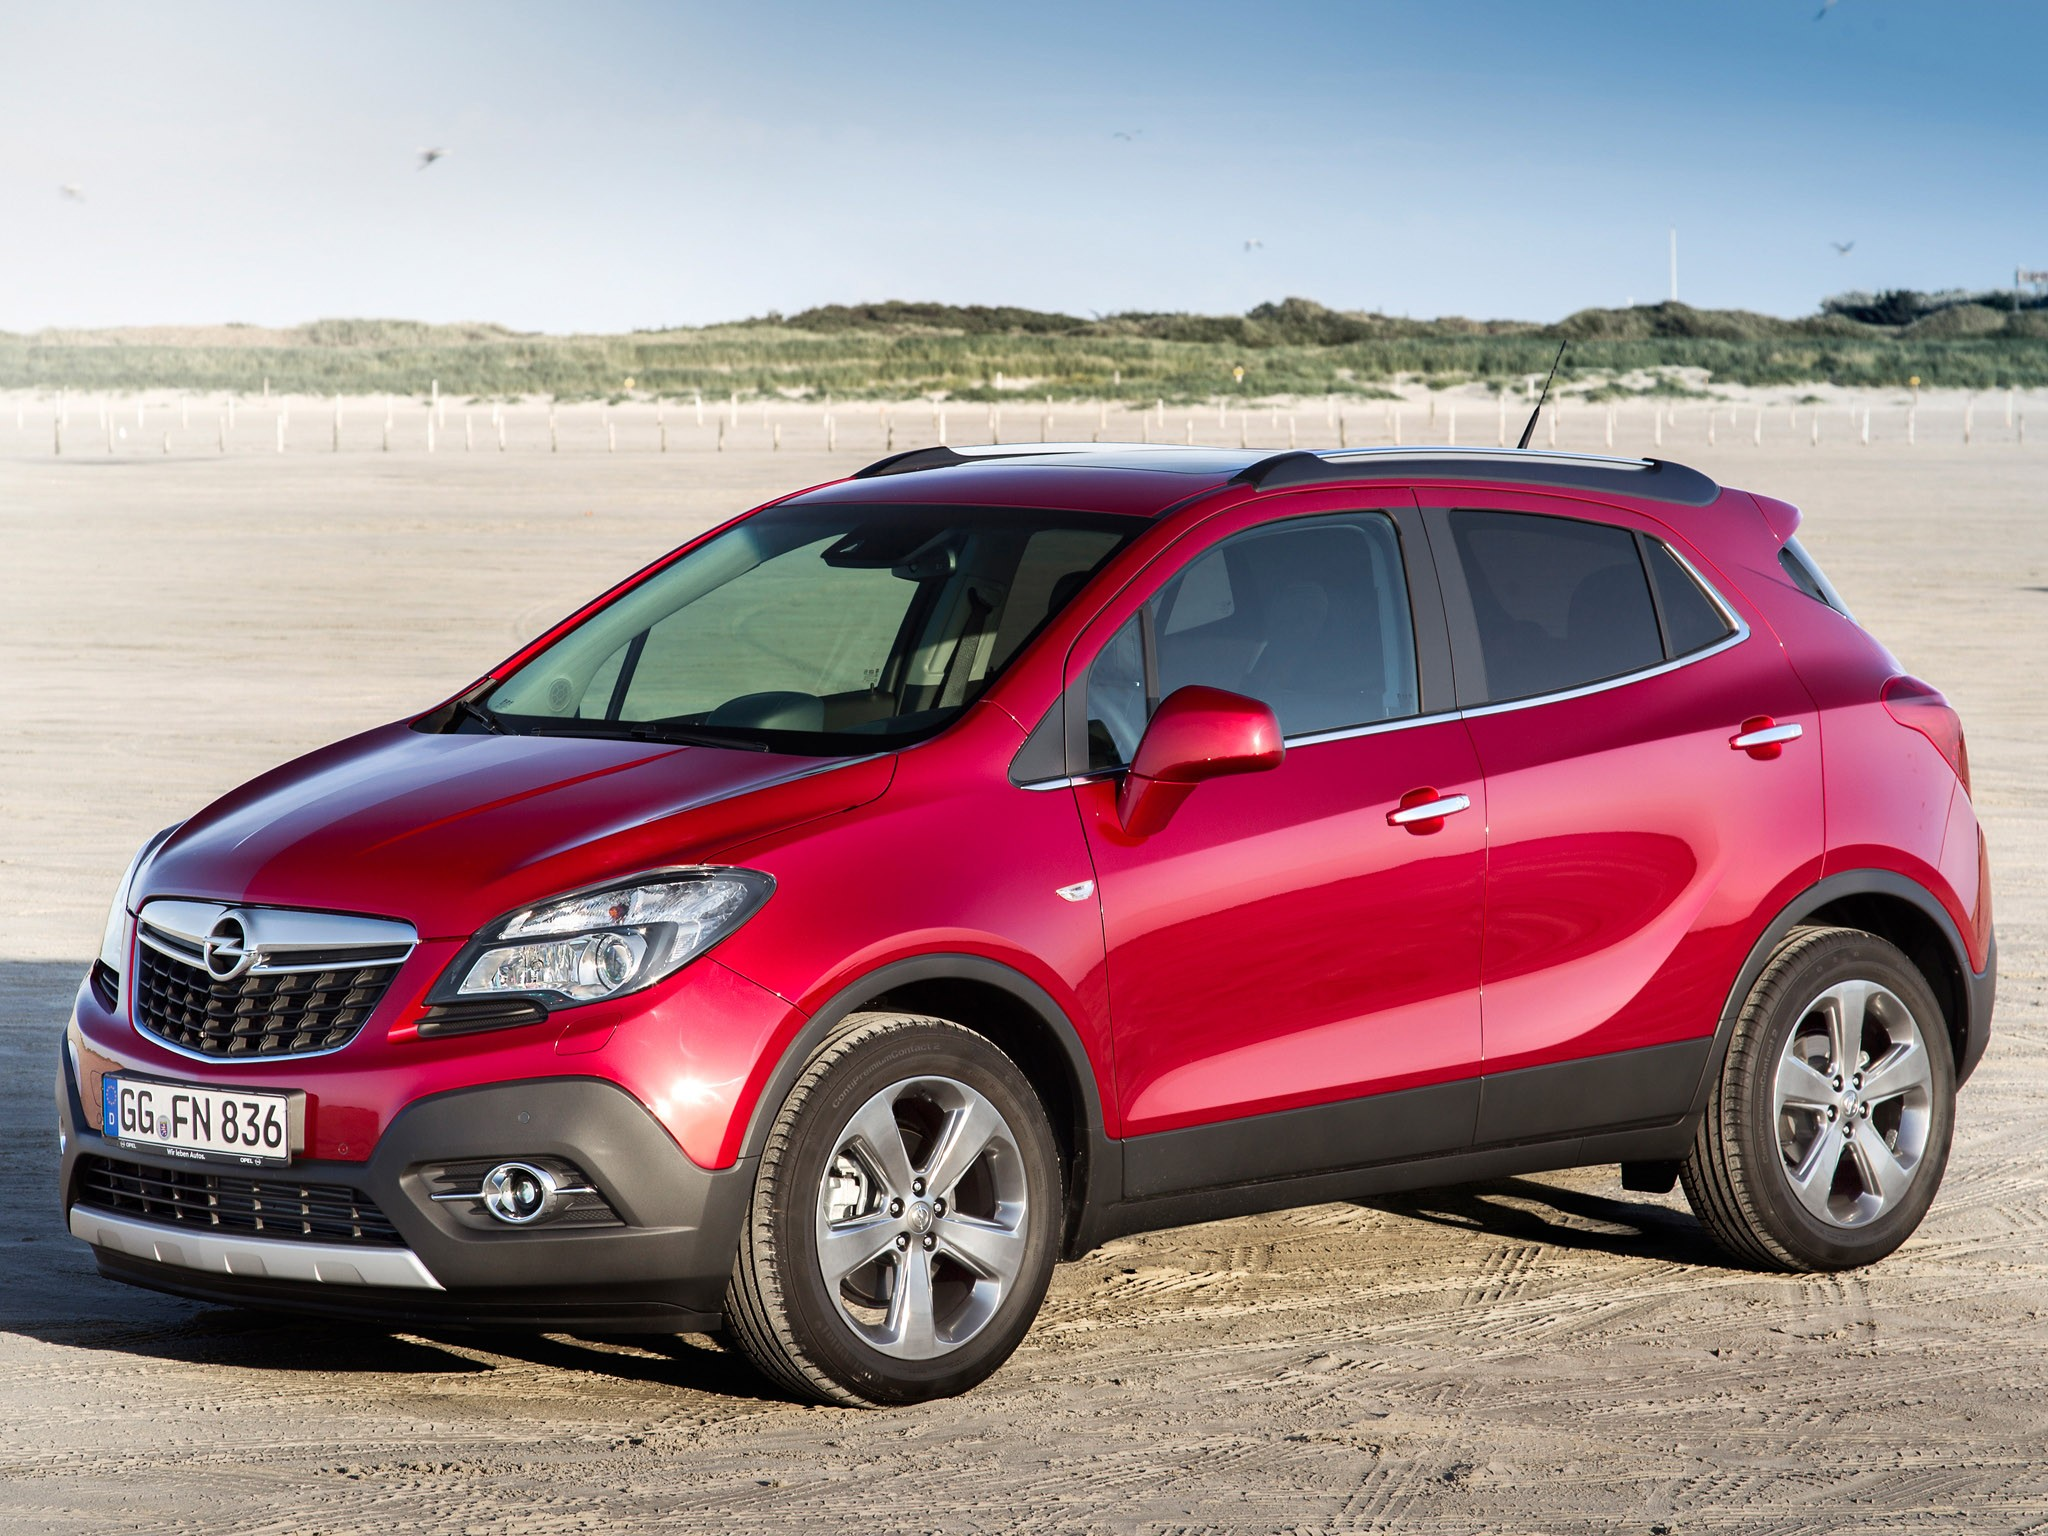 2012 Opel Mokka Turbo 4x4